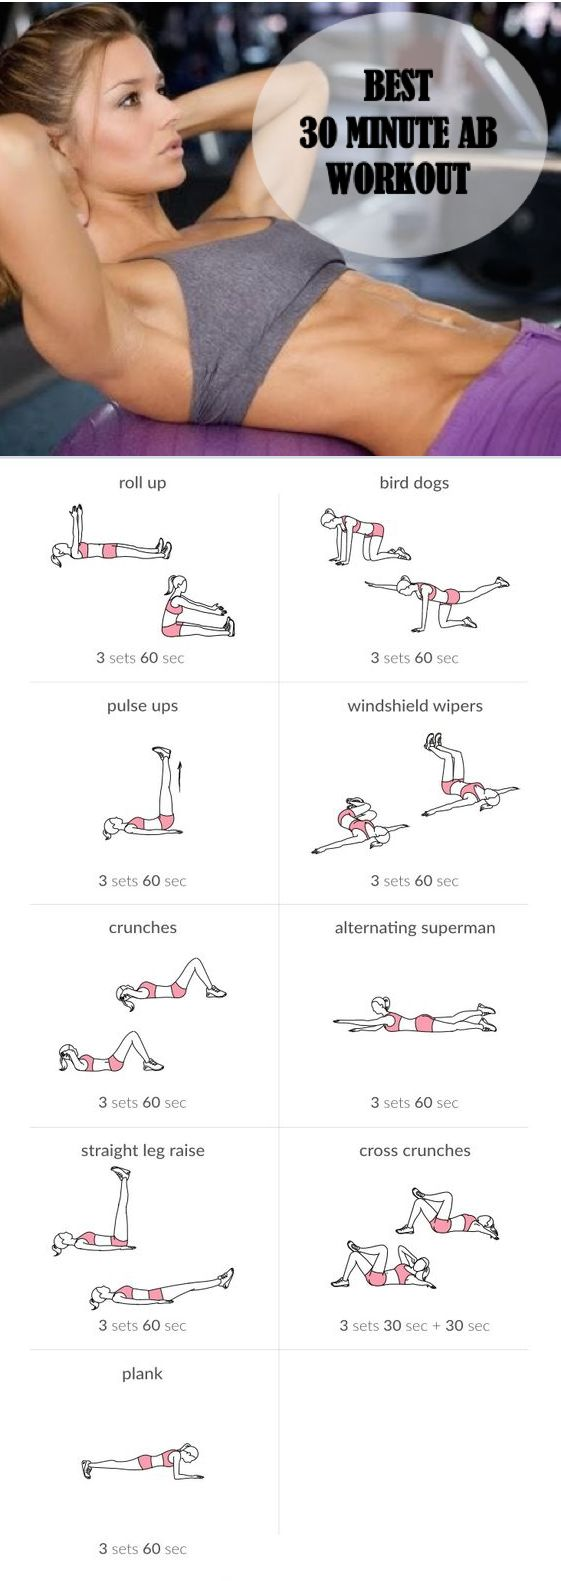 AB WORKOUT| Posted by: NewHowToLoseBellyFat.com